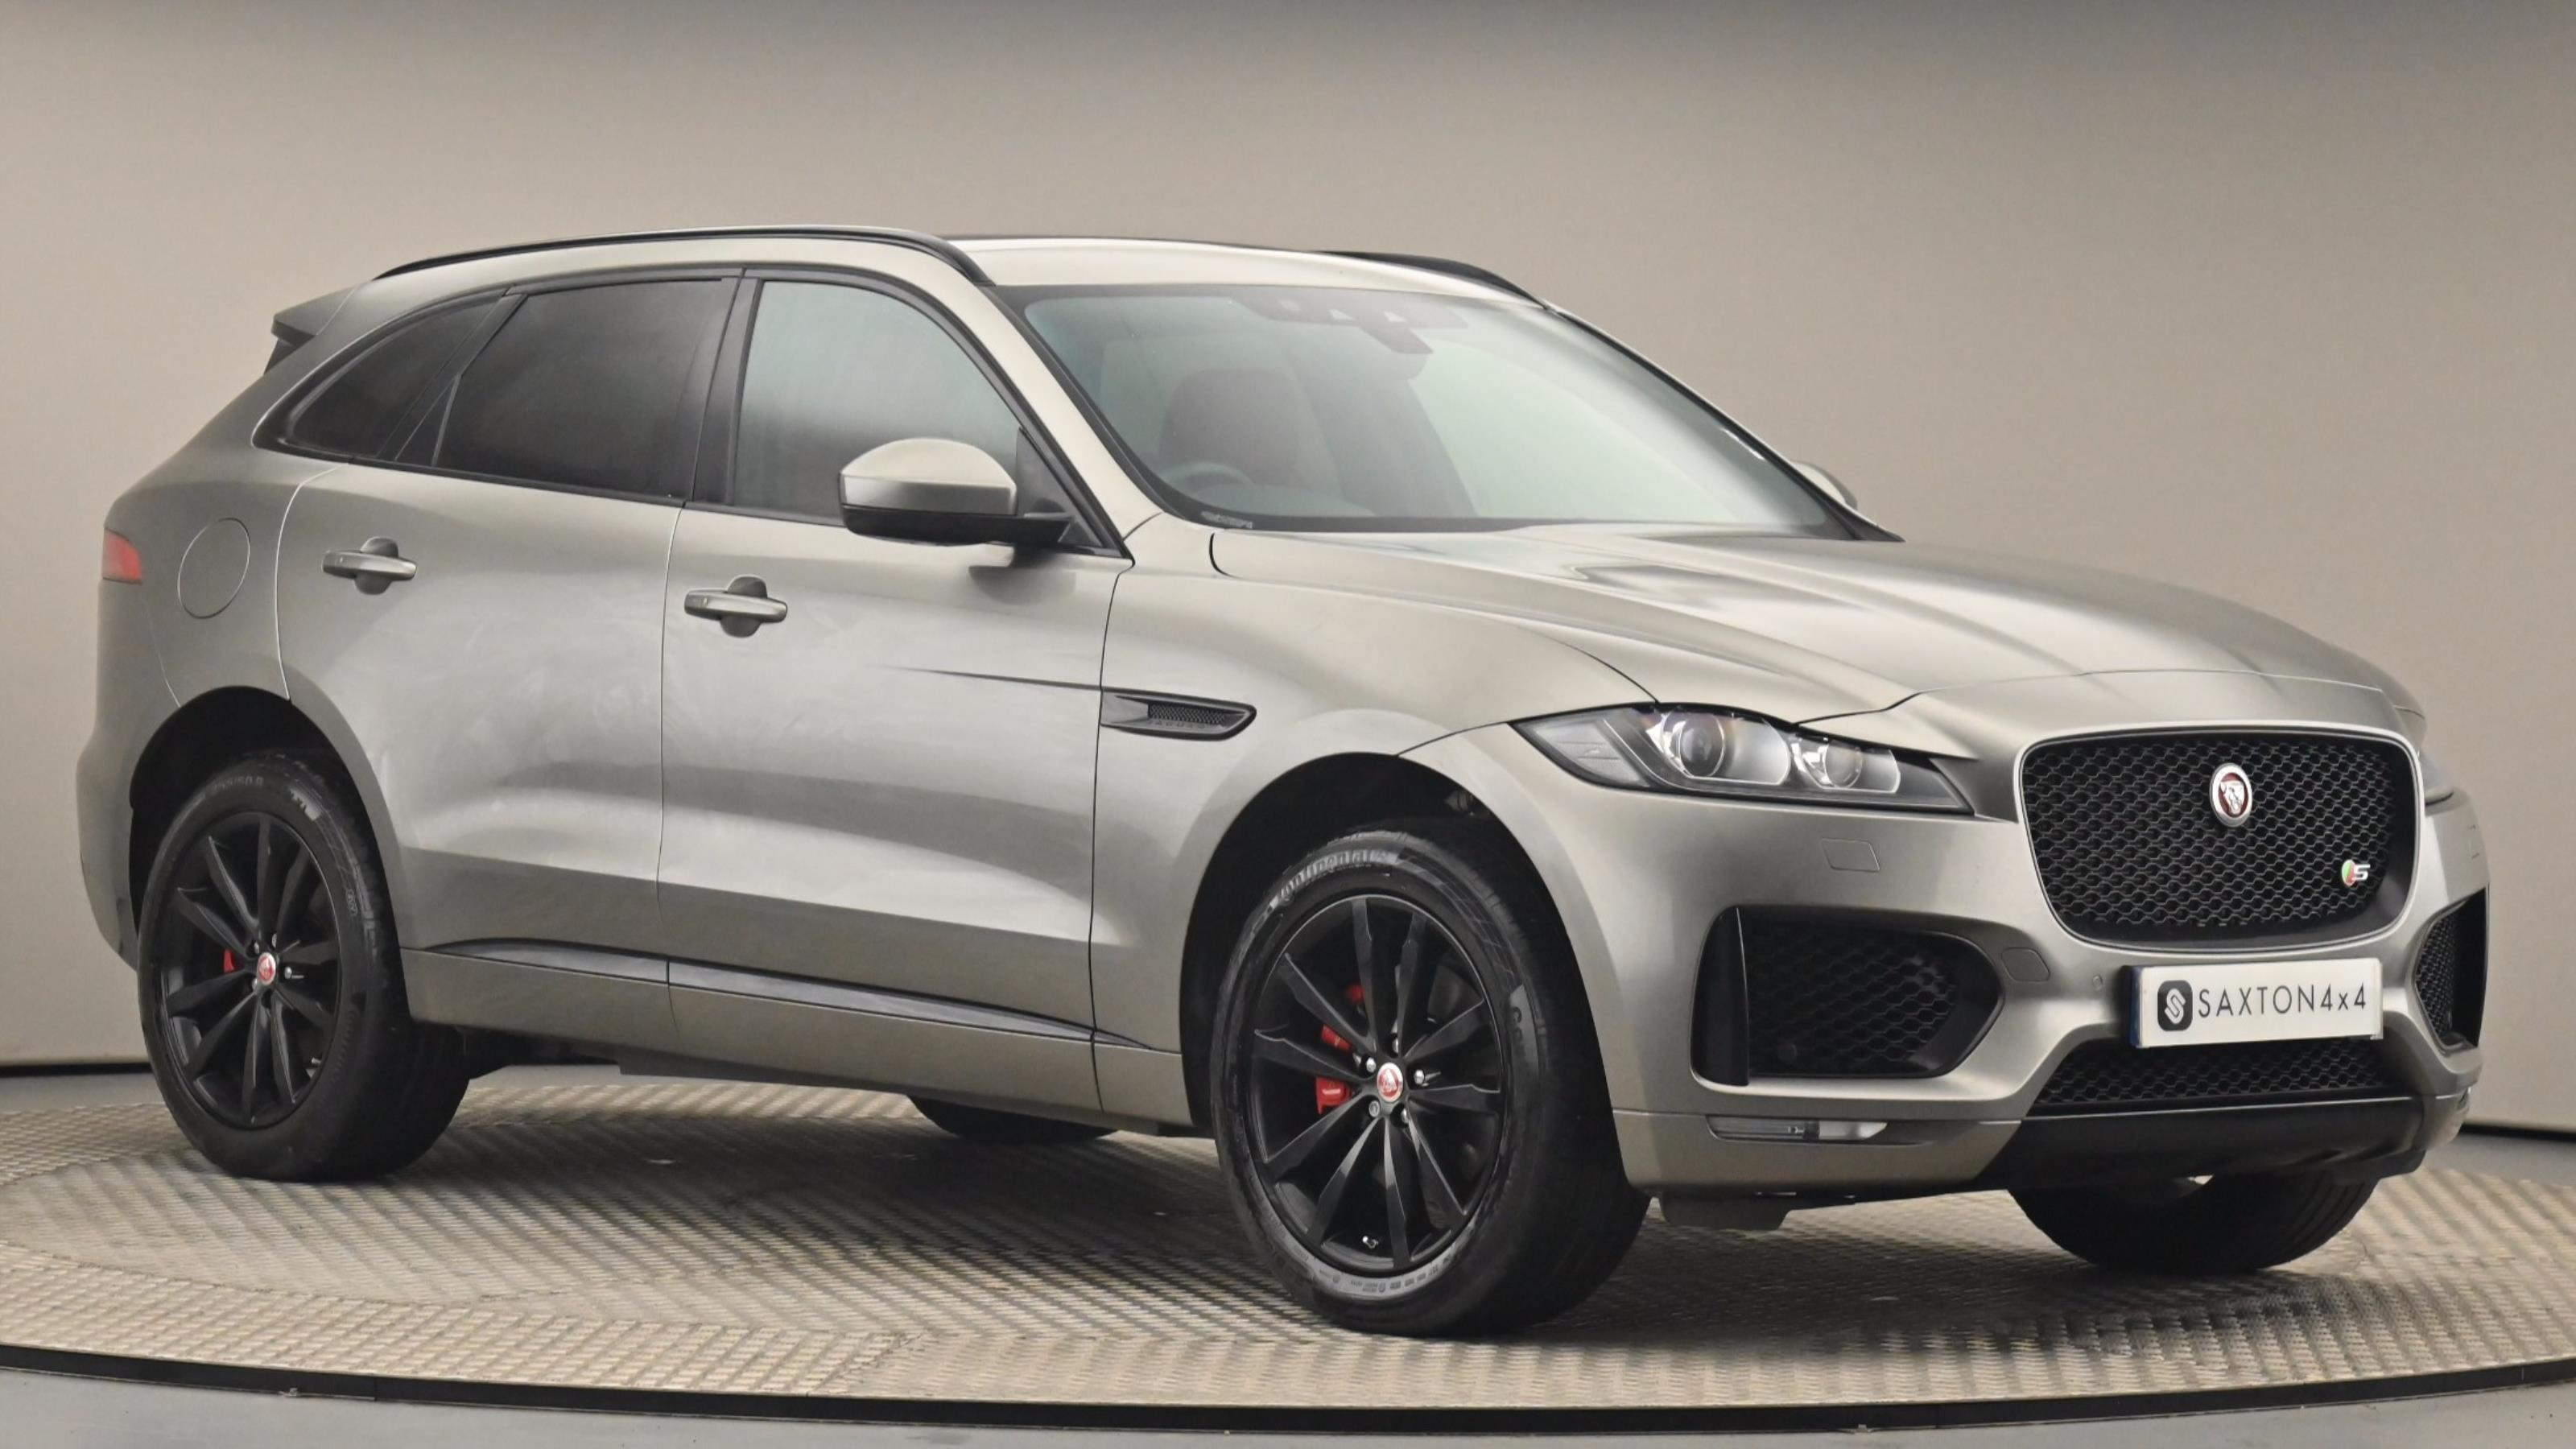 Used 2018 Jaguar F-PACE 3.0d V6 S 5dr Auto AWD SILVER at Saxton4x4